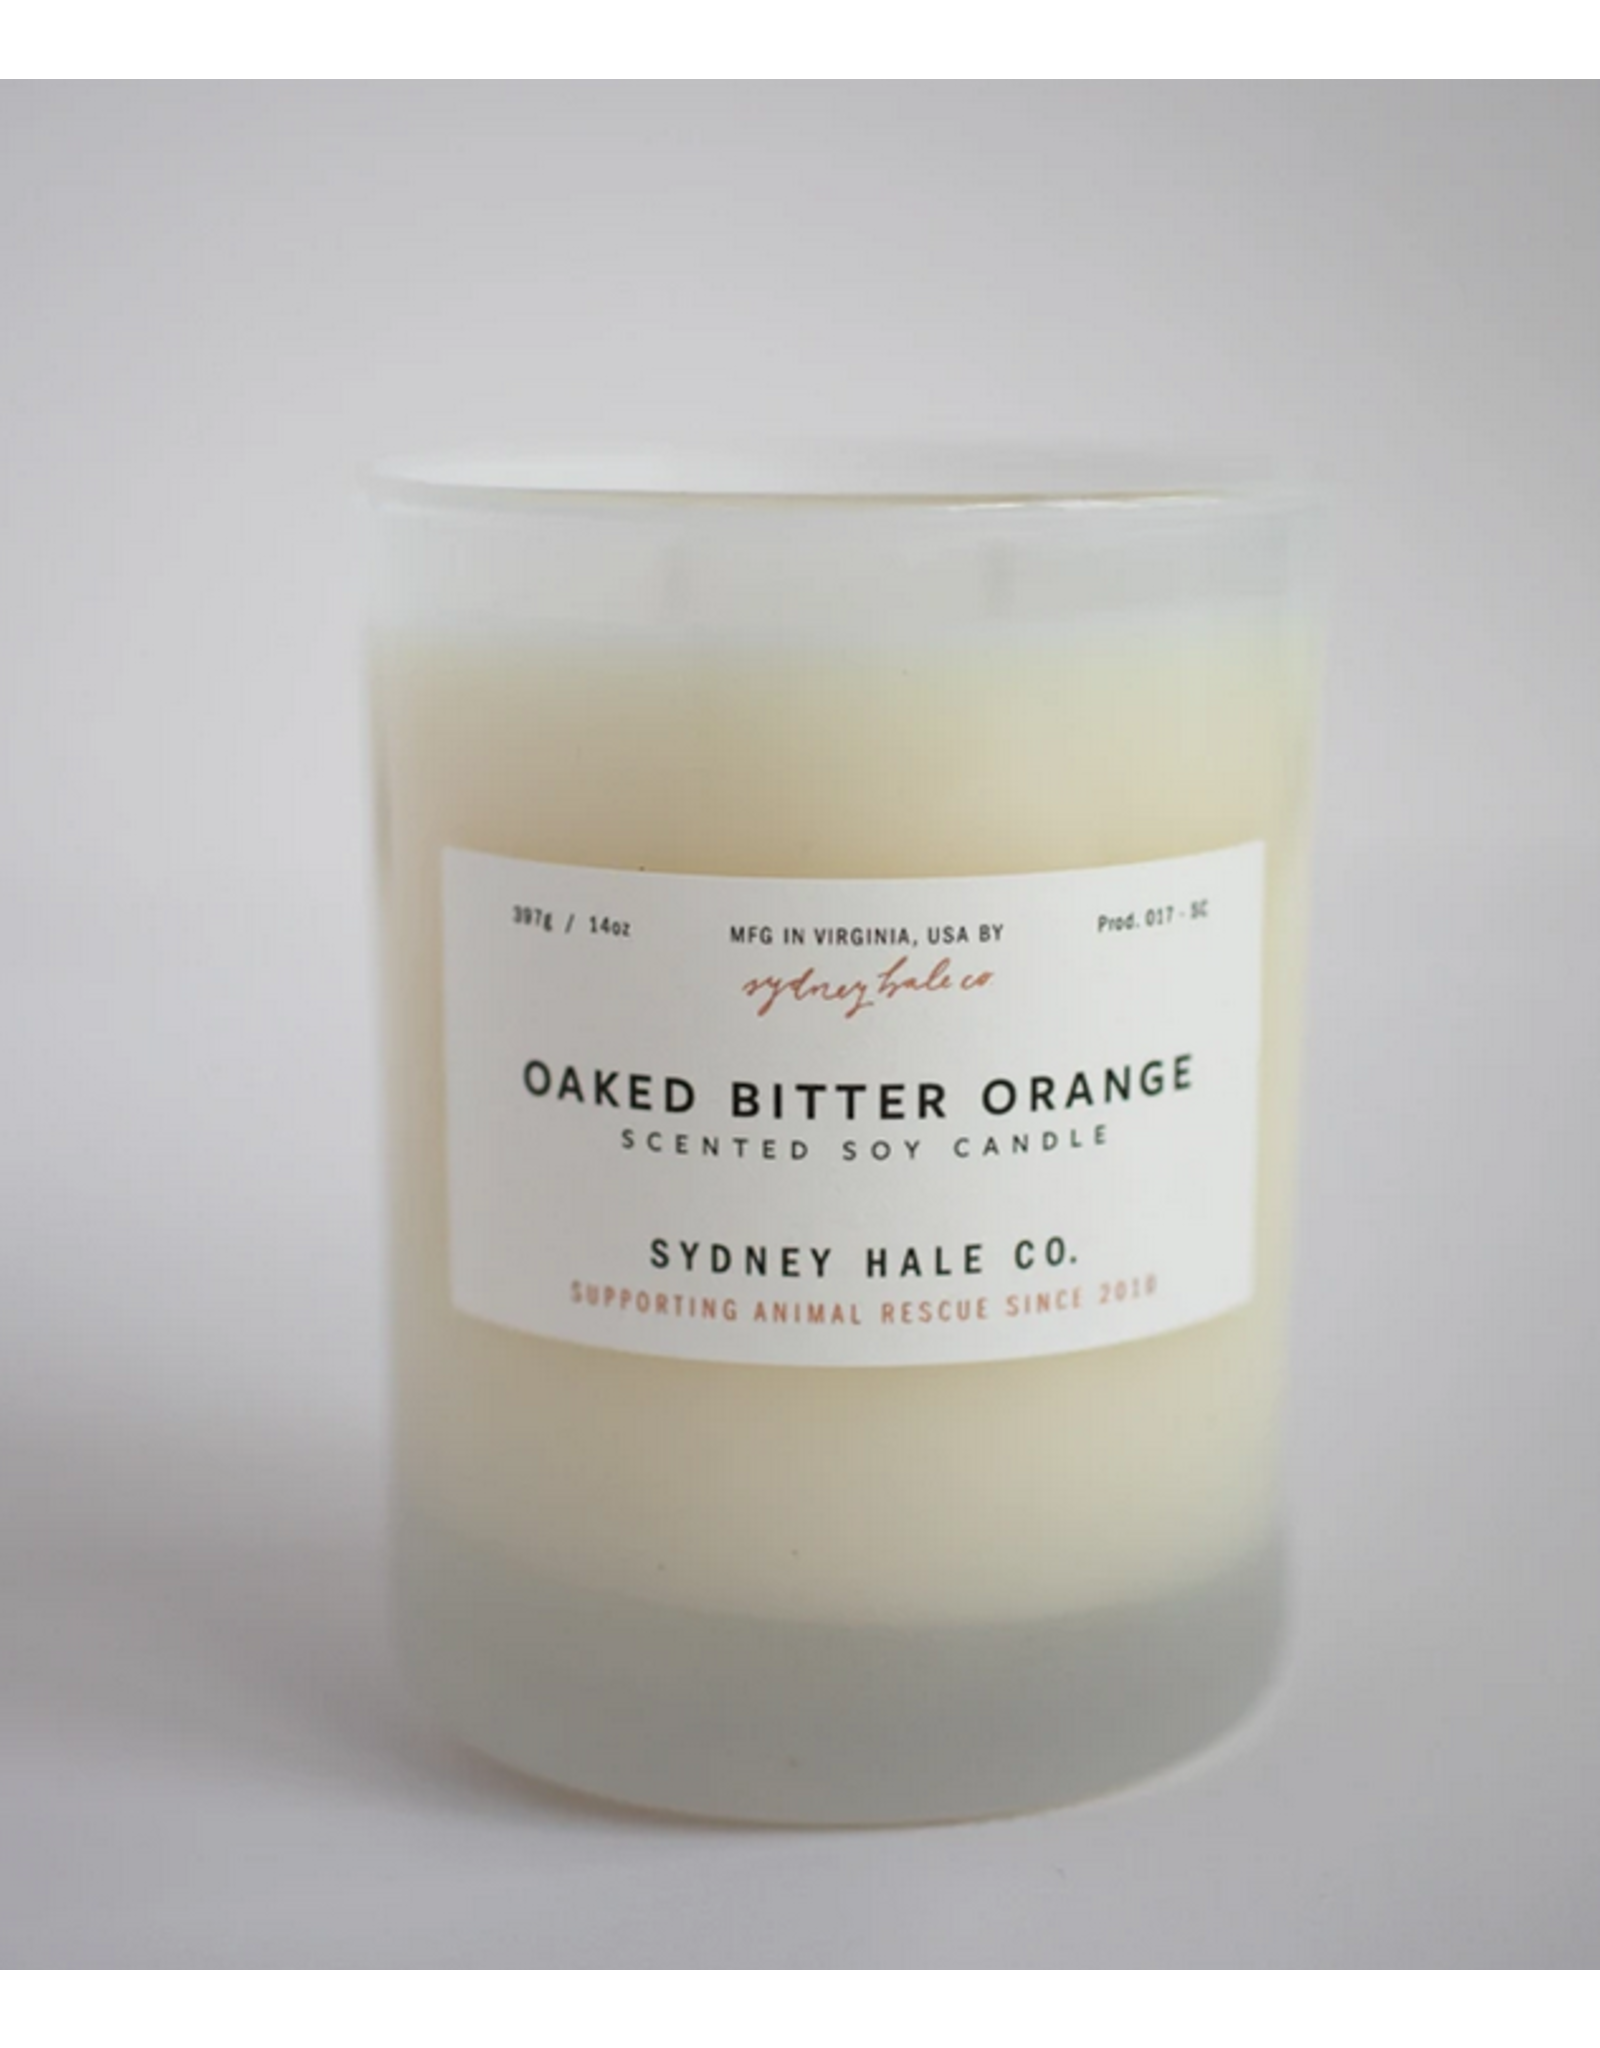 Sydney Hale Co. Clear Glass - Oaked Bitter Orange